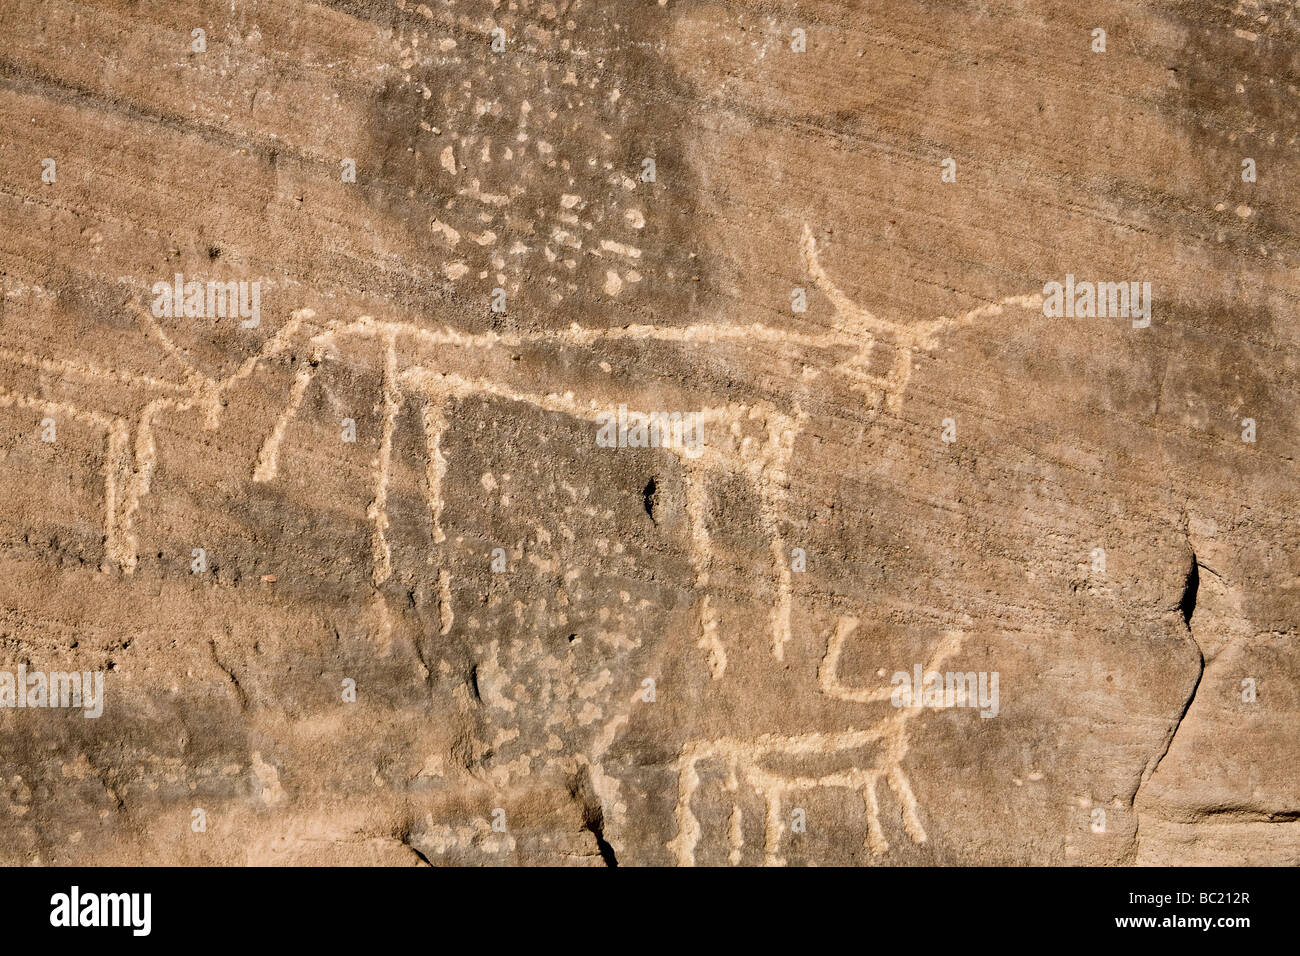 Rock-art of domesticated cattle in the Eastern Desert of Egypt, North Africa - Stock Image